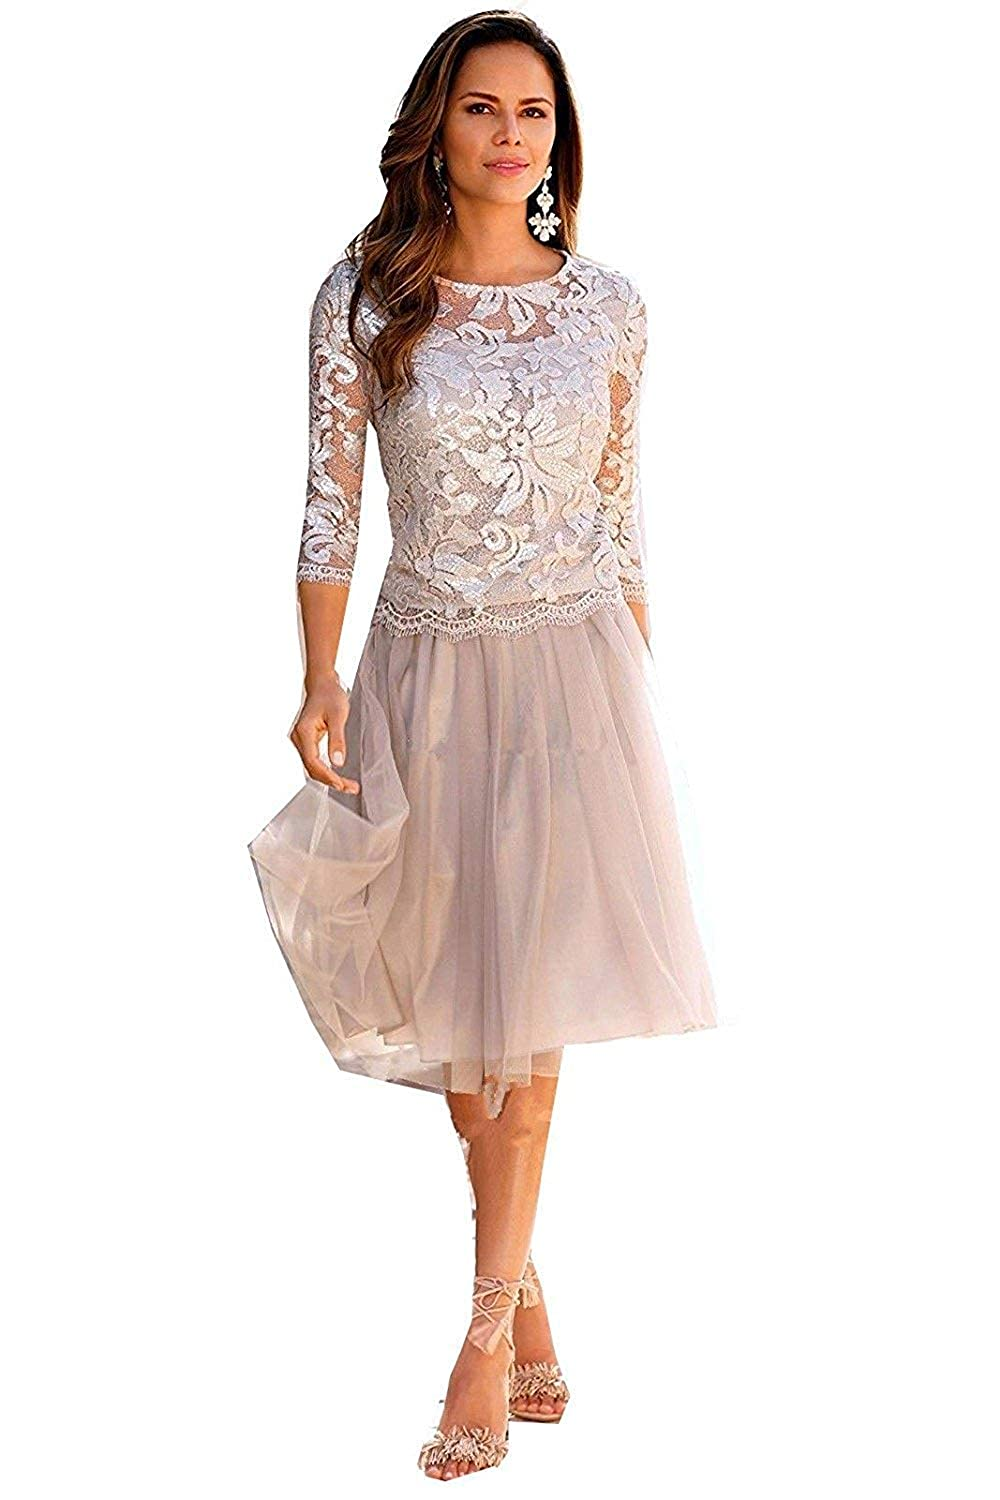 Fenghuavip Womens Short Dress For Wedding Lace Mother Of The Bride